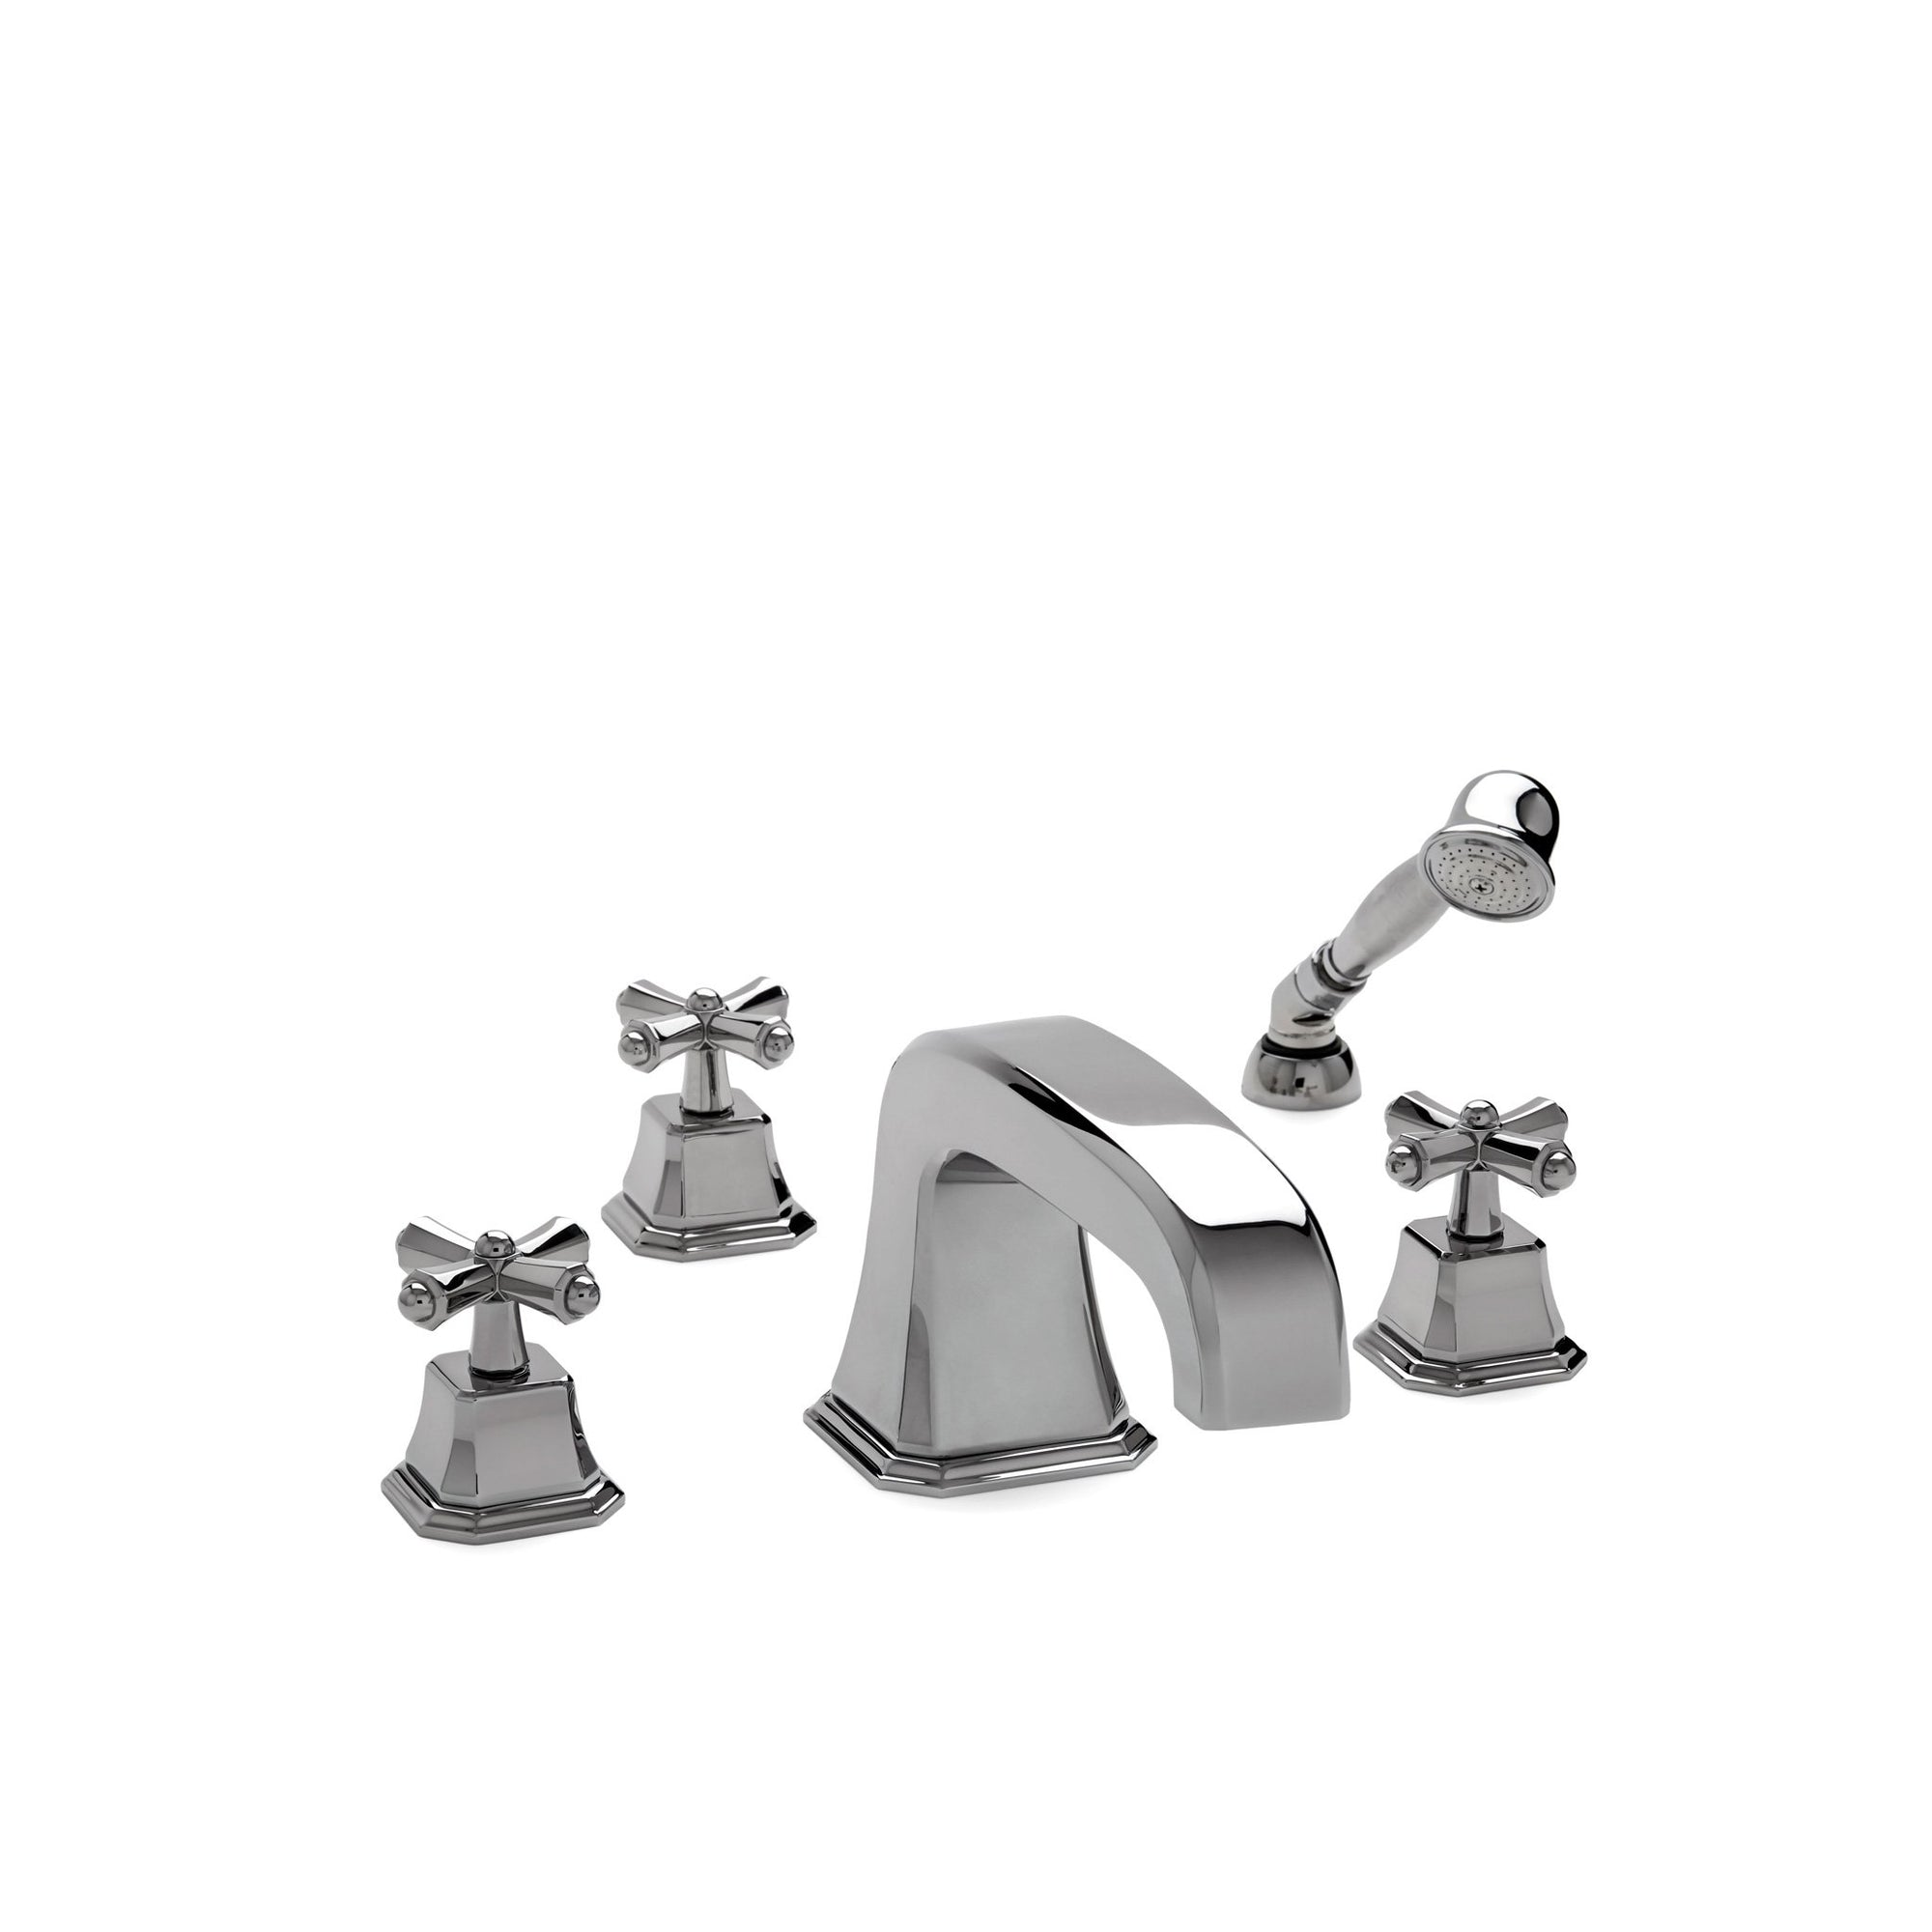 0981DTS824L-CP Sherle Wagner International Harrison Cross Handle Deck Mount Tub Set Large with Hand Shower in Polished Chrome metal finish